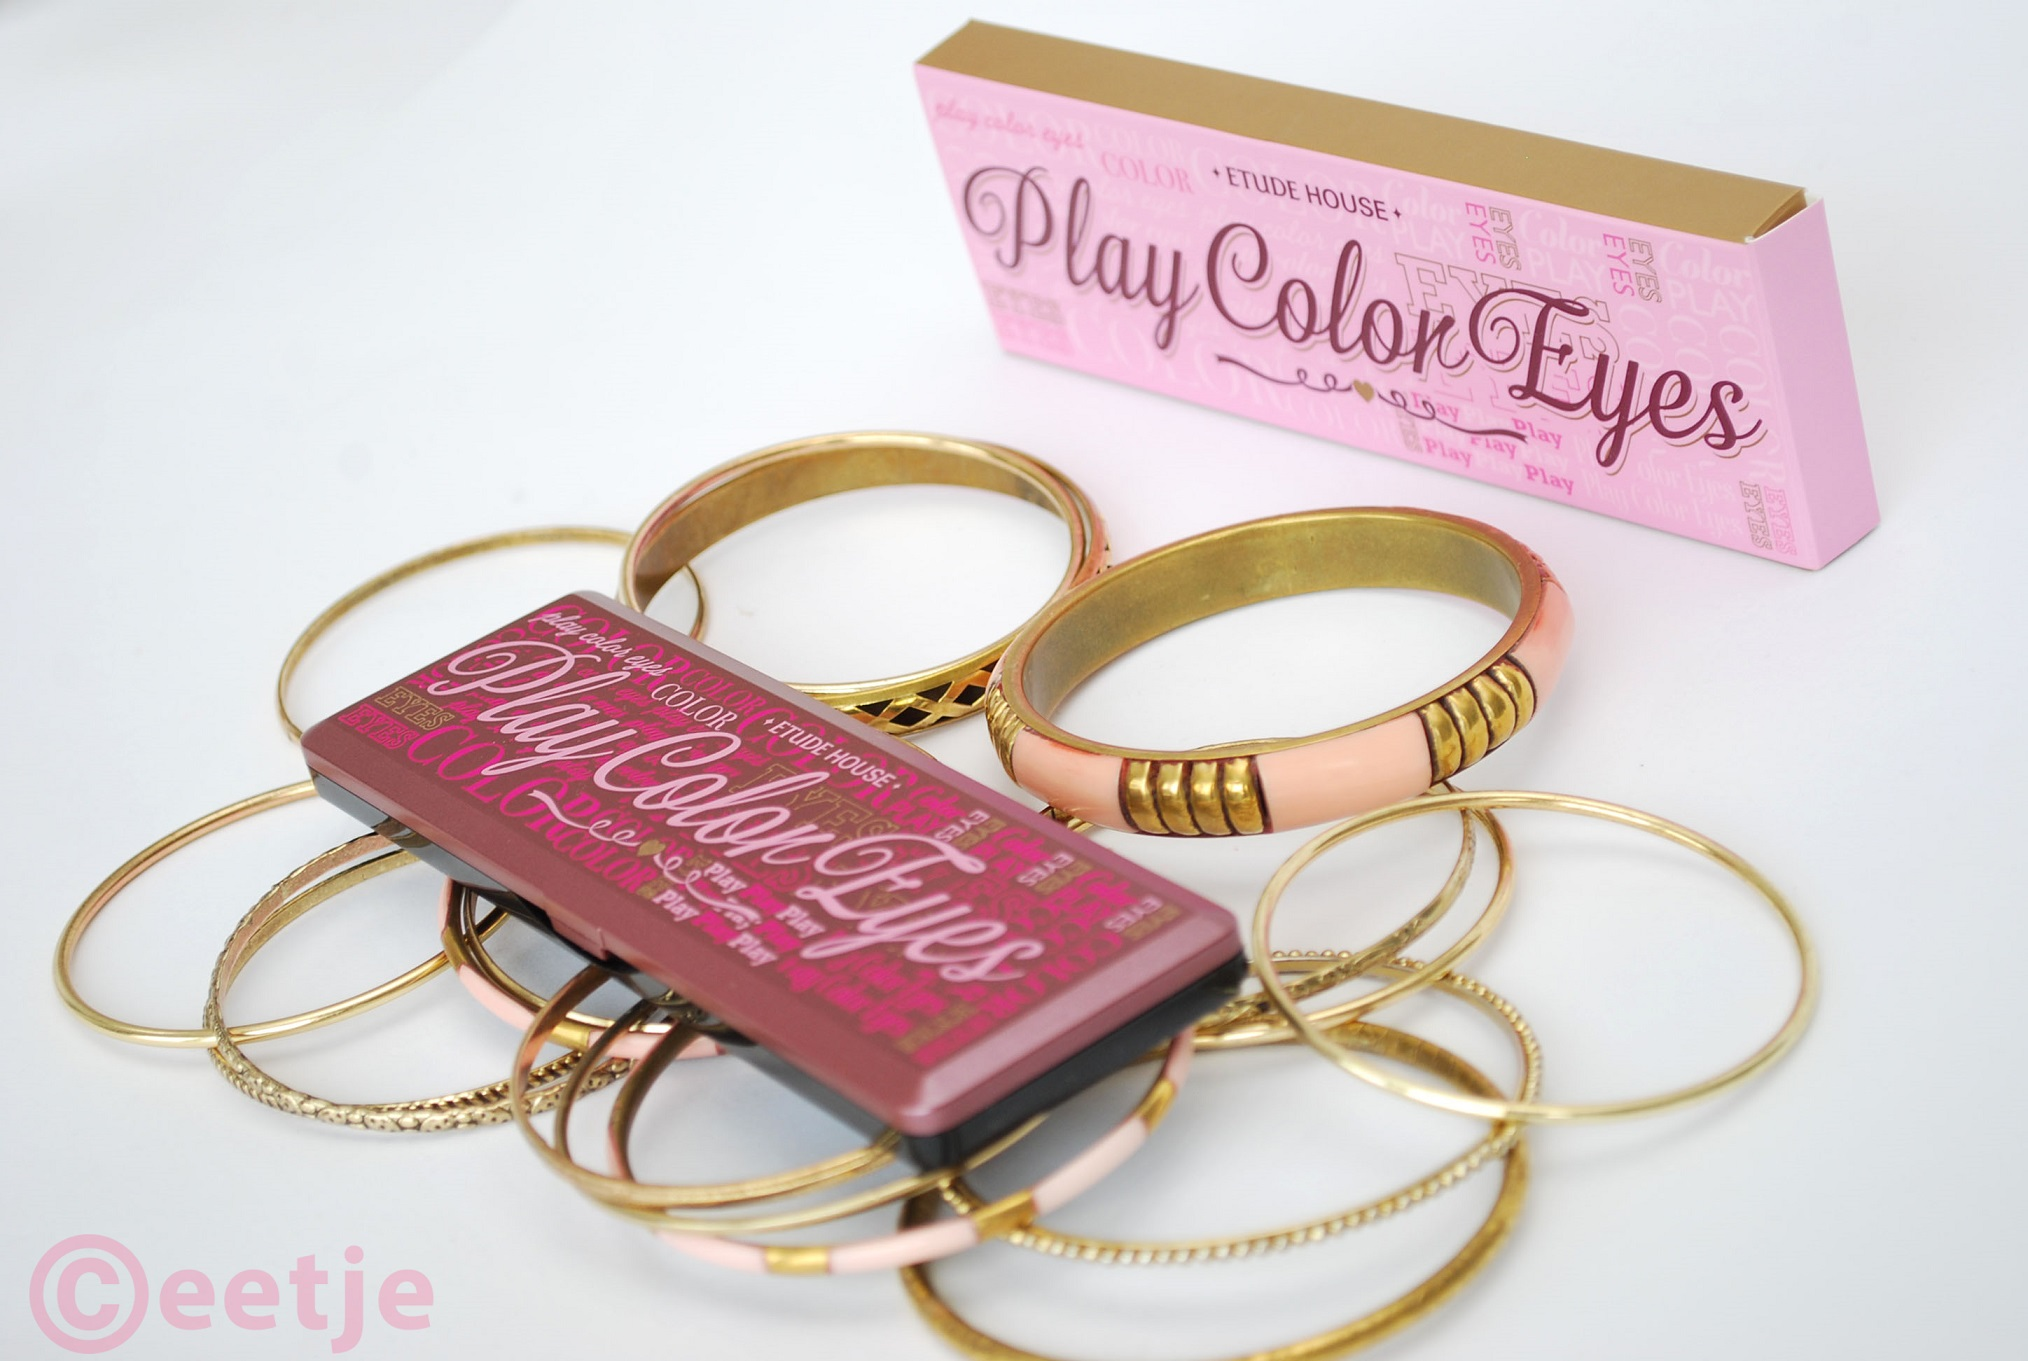 Etude House play color eyes so hot palette review swatch